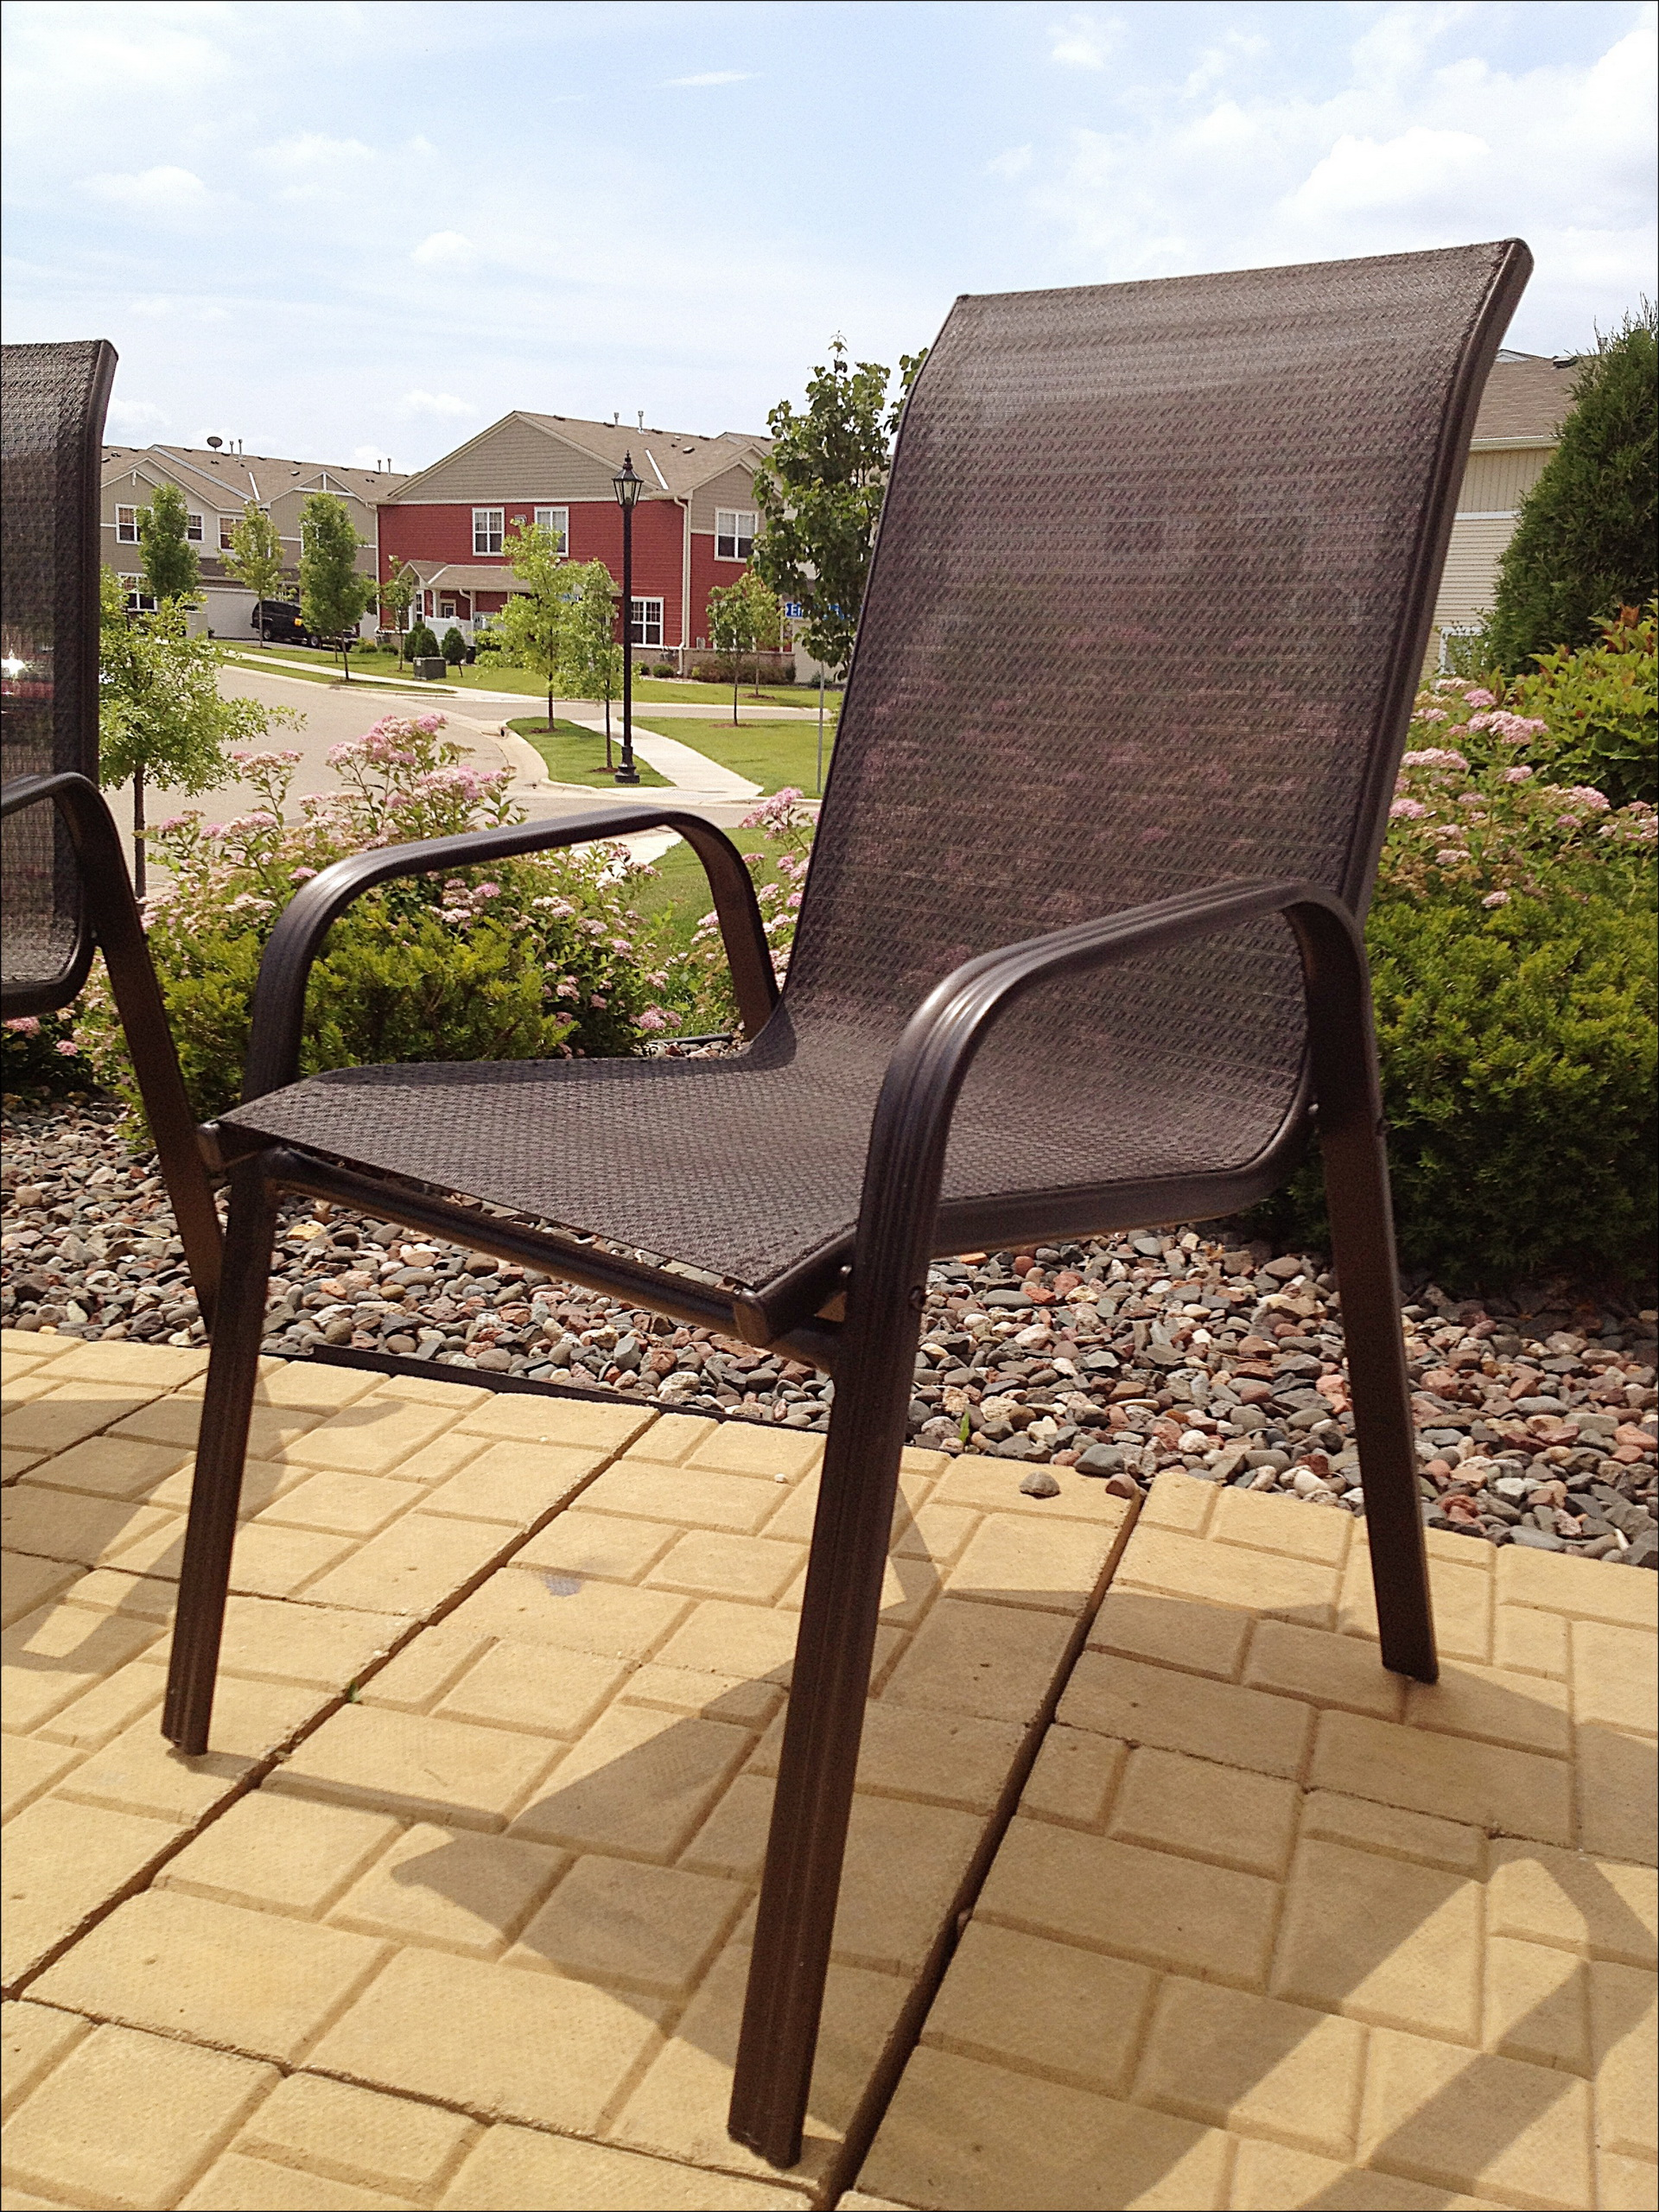 Aluminum patio furniture touch up paint 20 Examples of why Aluminium Furnit